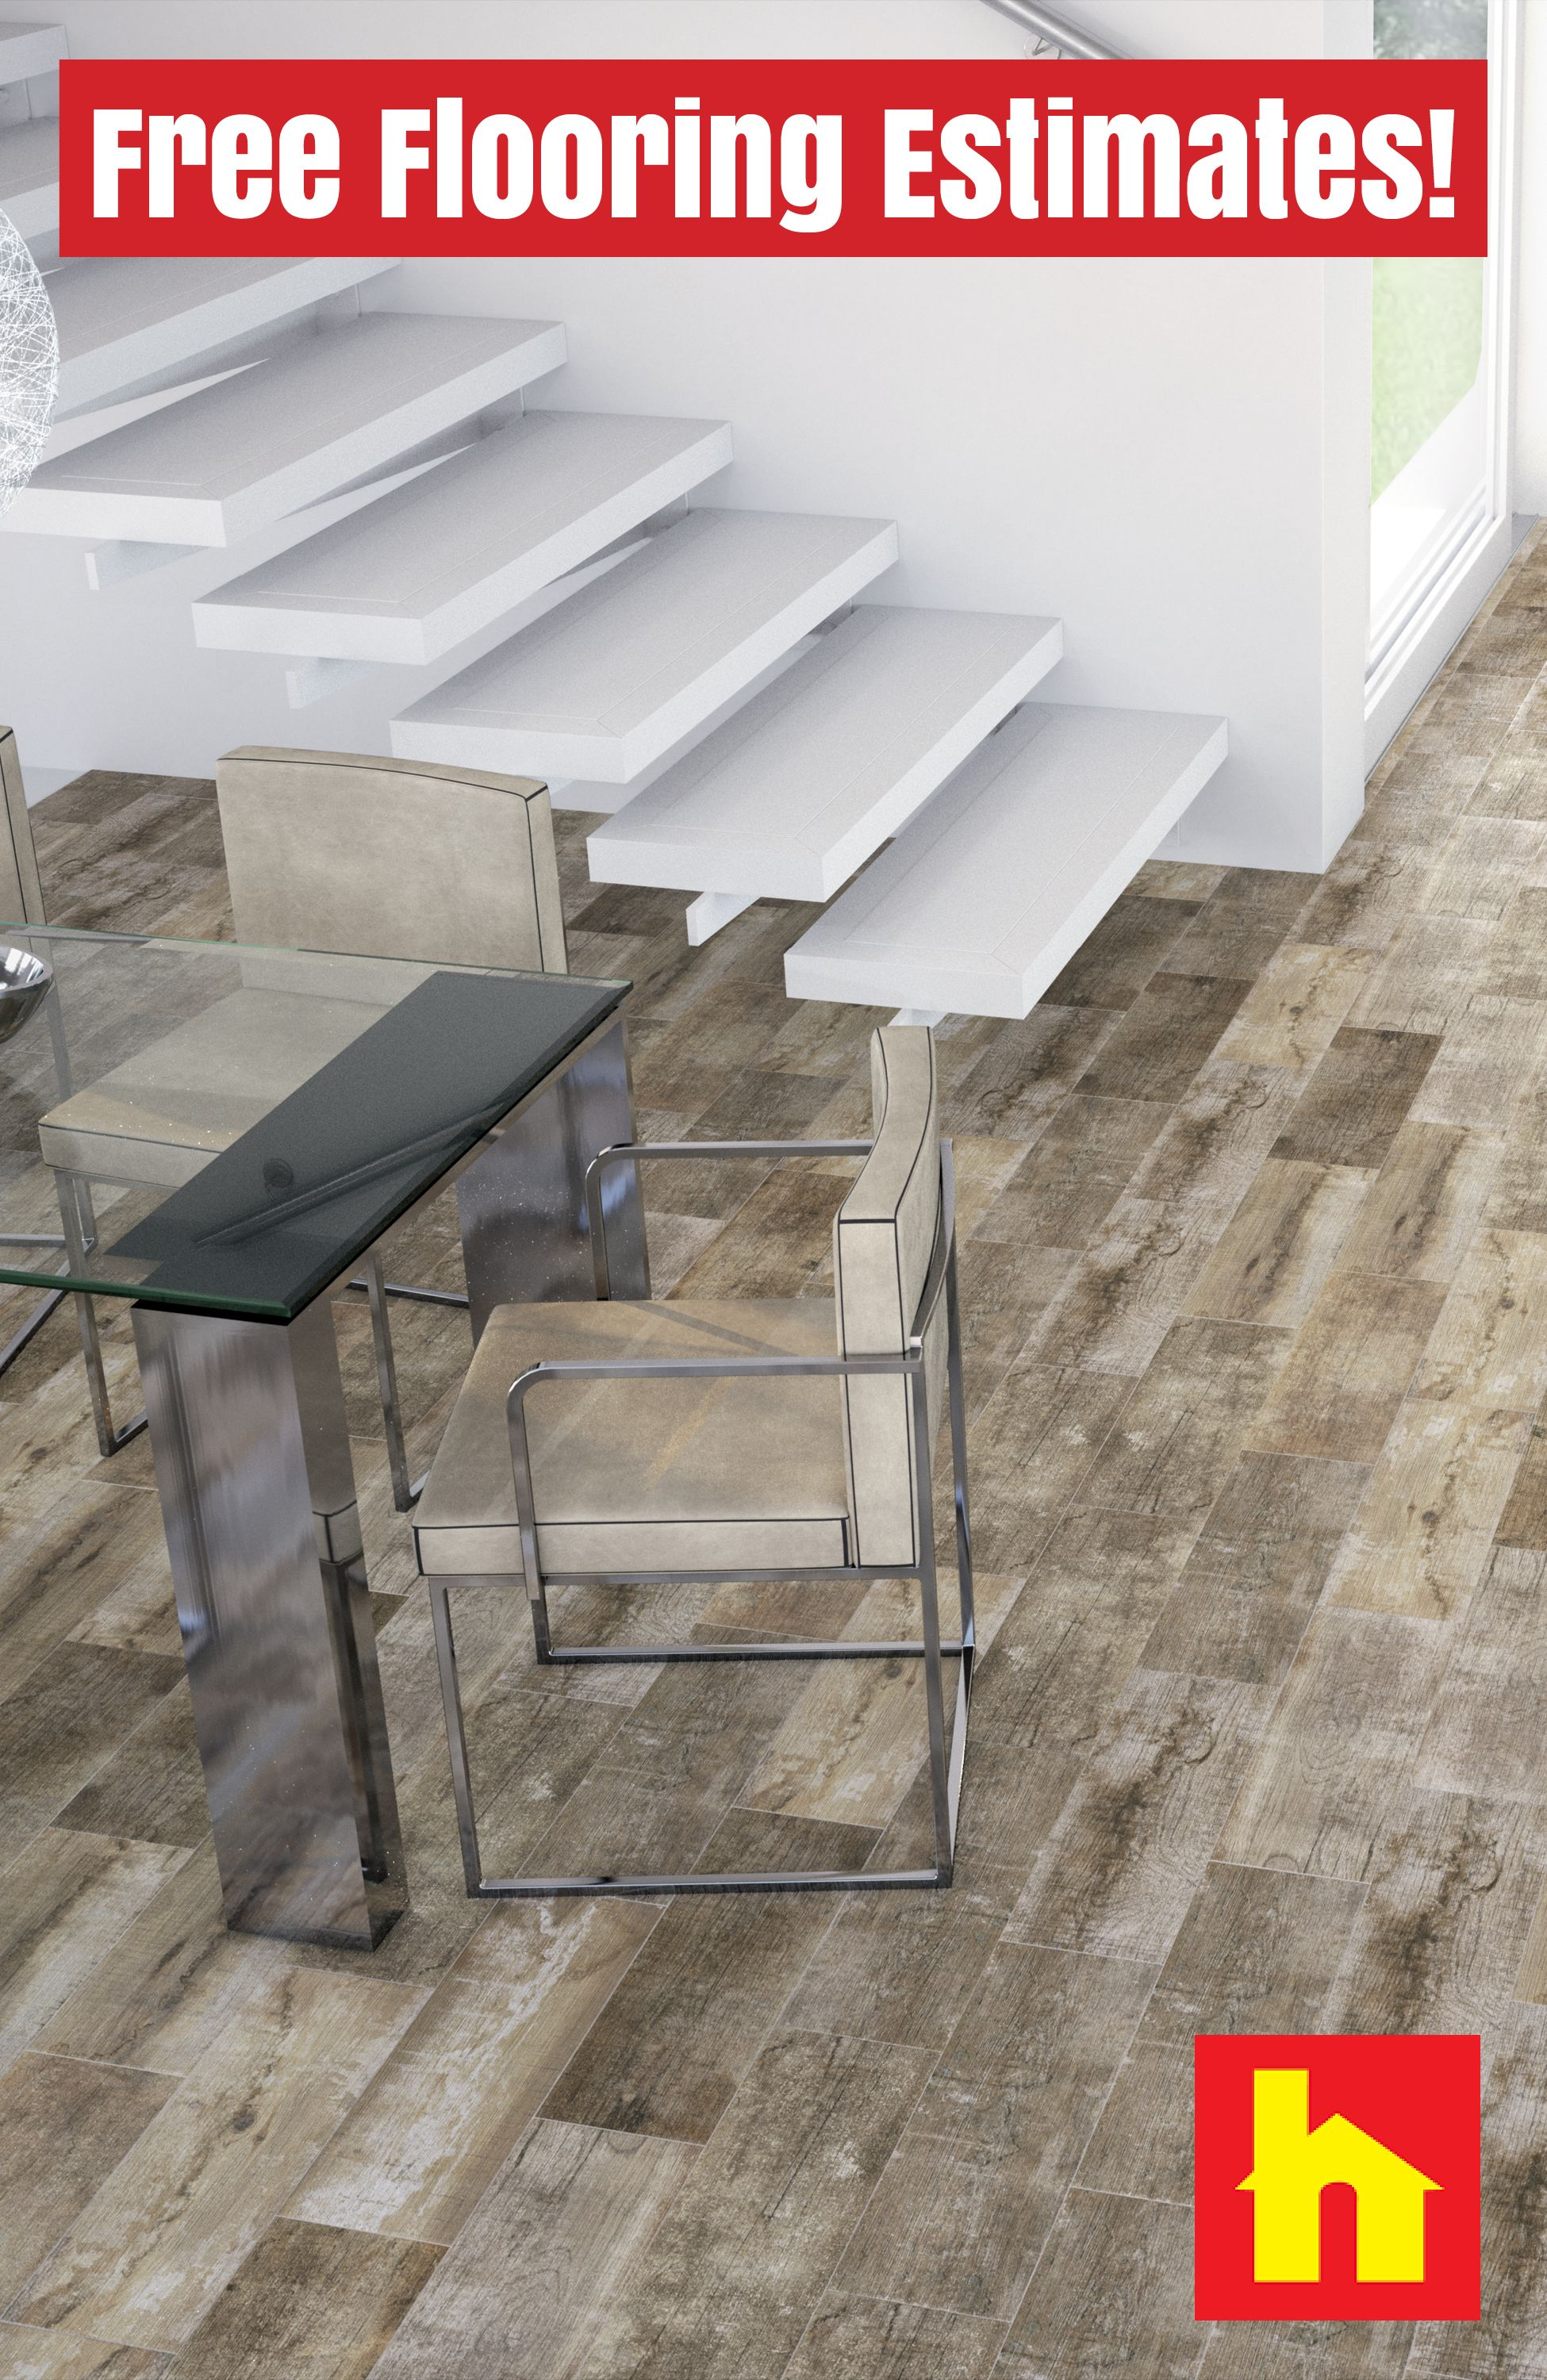 Contact Us At The Link Below For A FREE Flooring Estimate We Have - Tile flooring calculator free